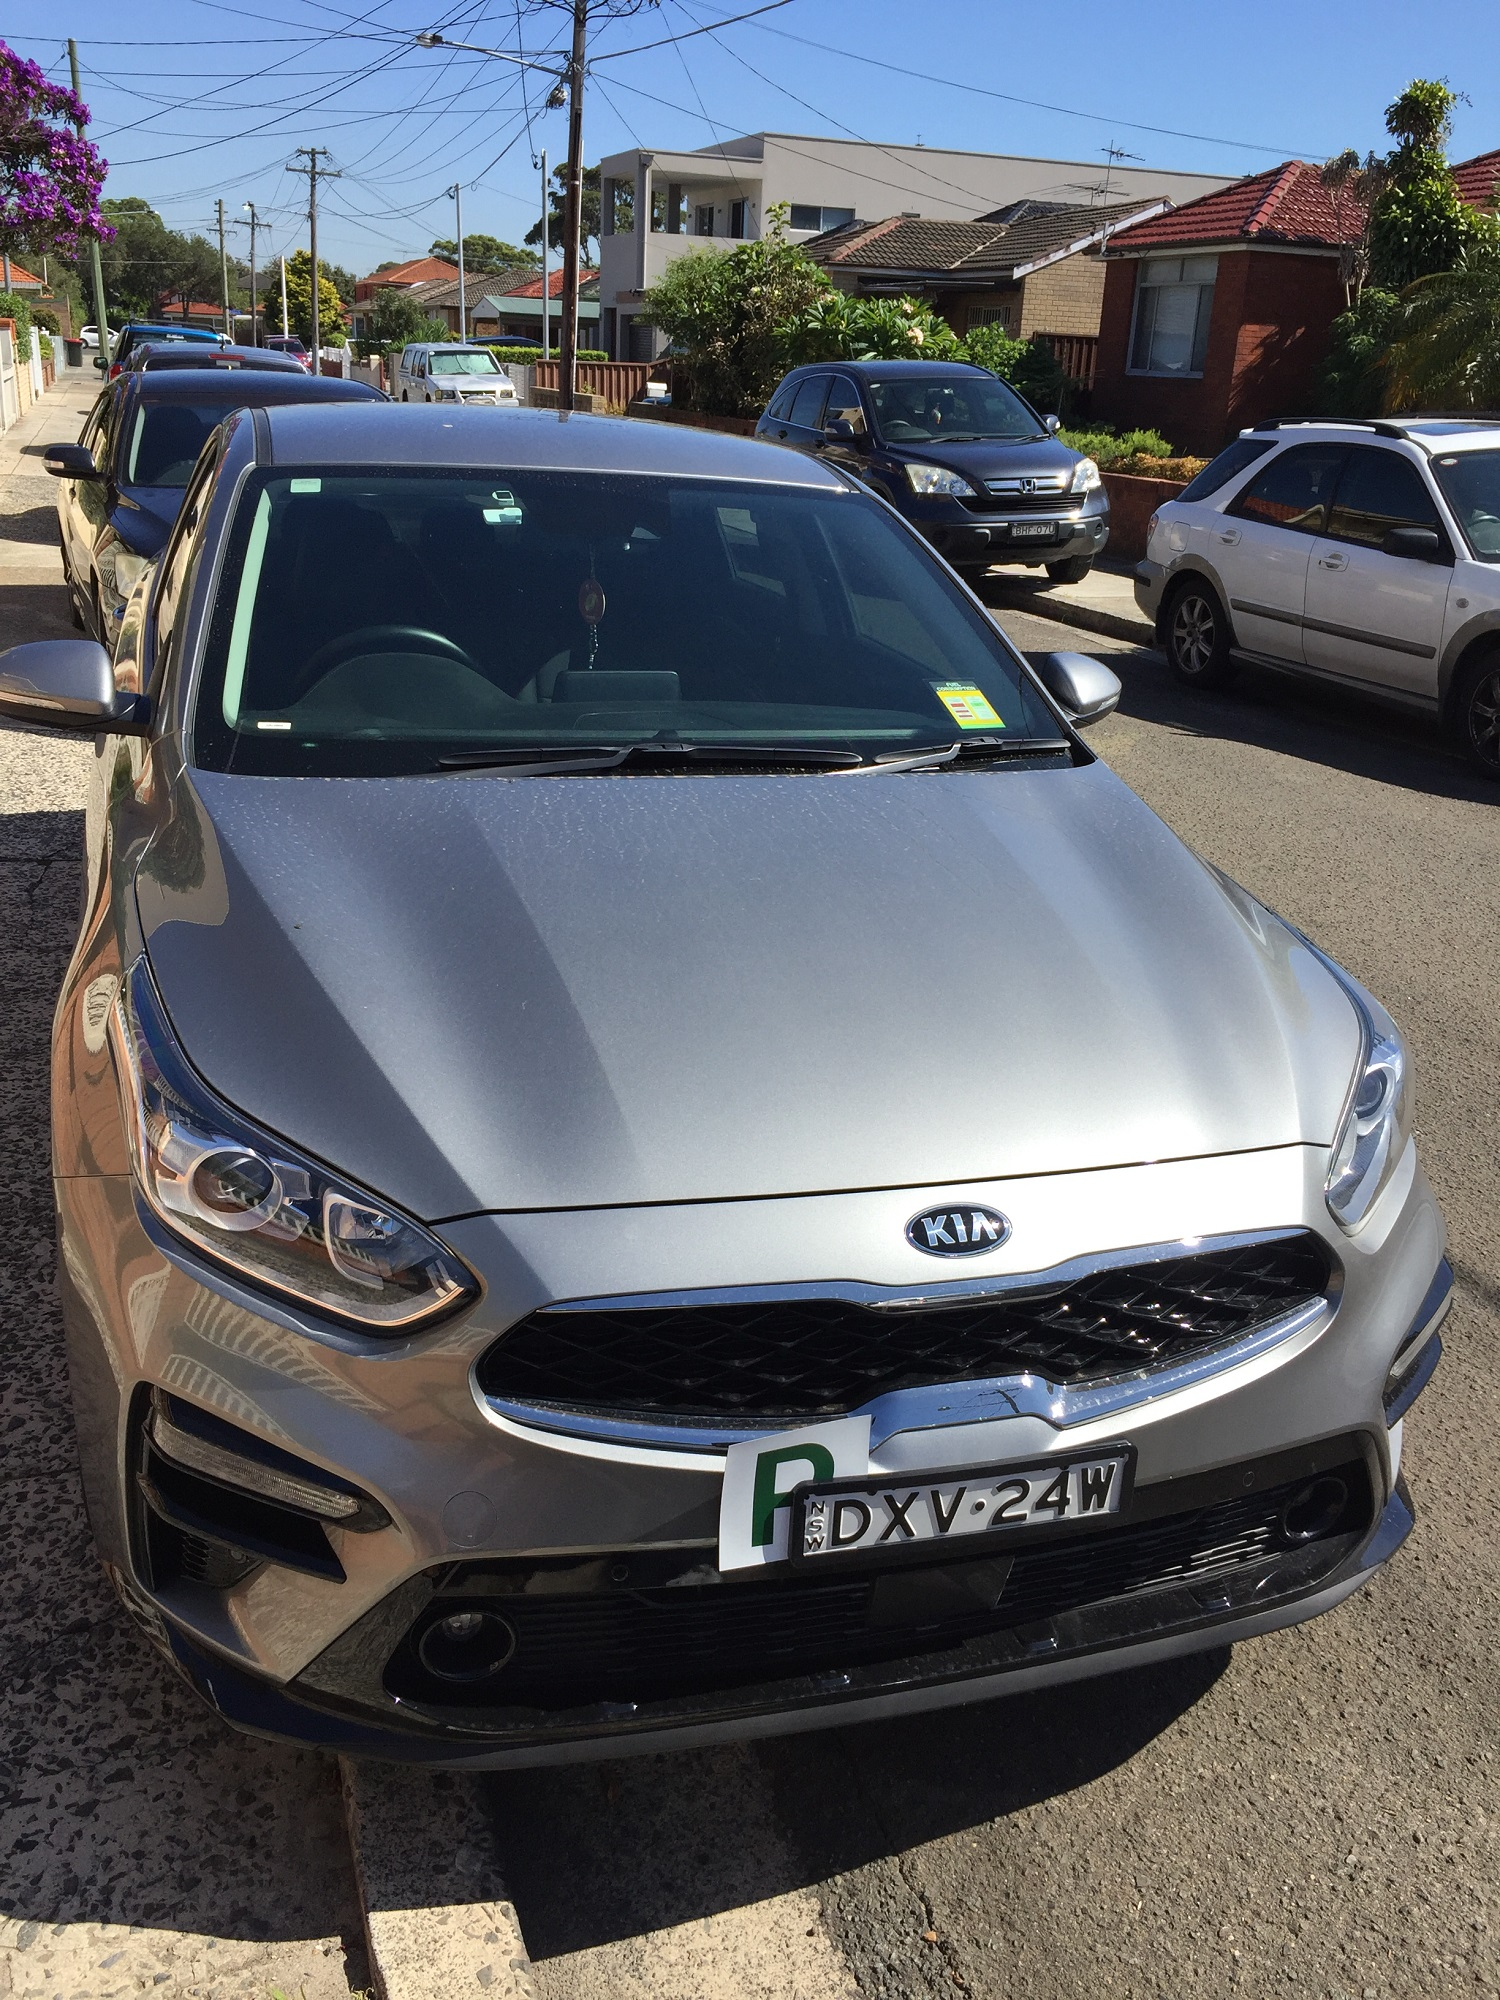 Picture of Eren's 2018 Kia Cerato